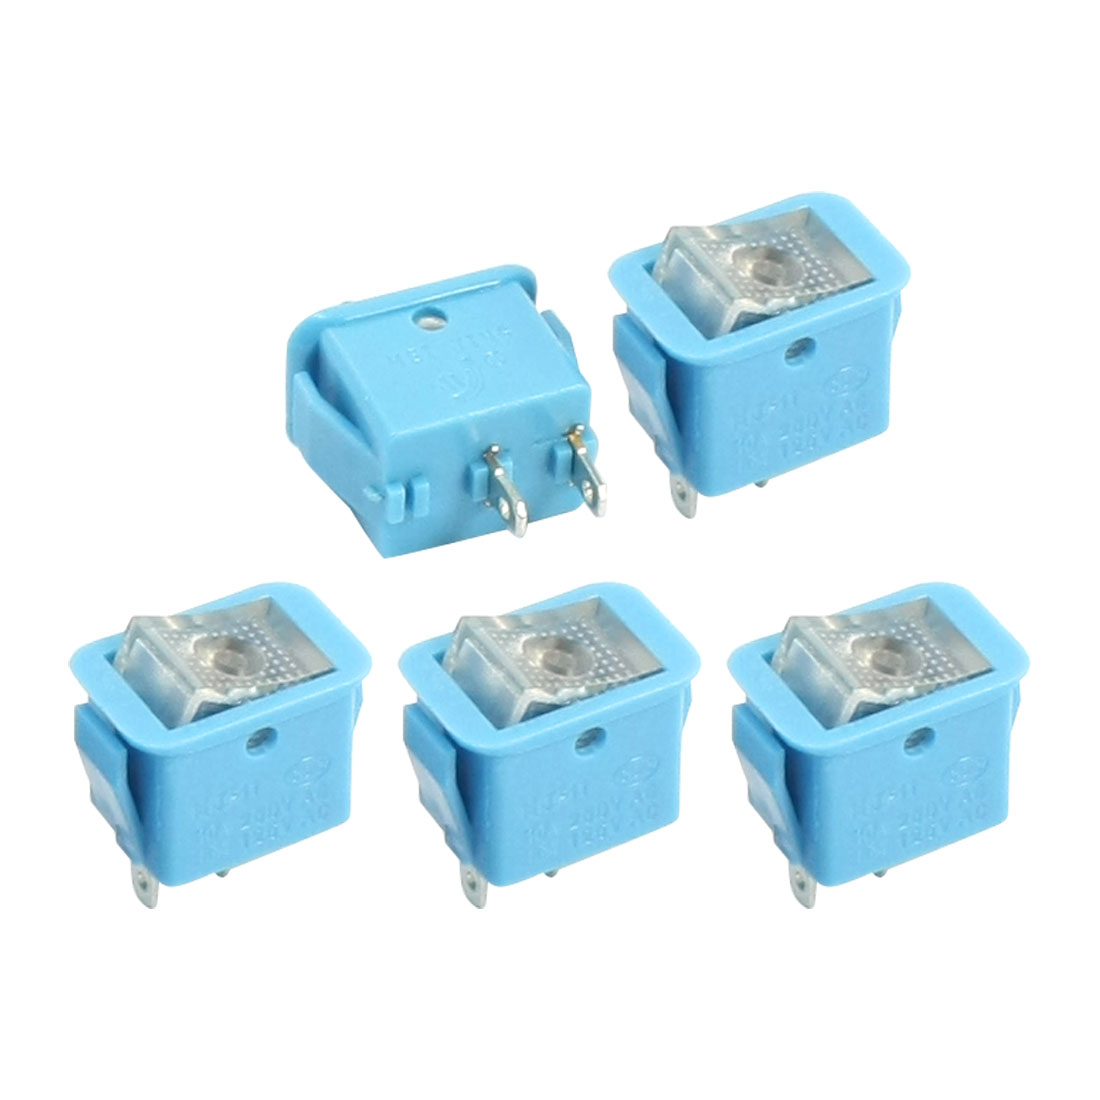 5pcs Blue Latching SPST 2-Position Rocker Switch AC250V/10A 125V/13A